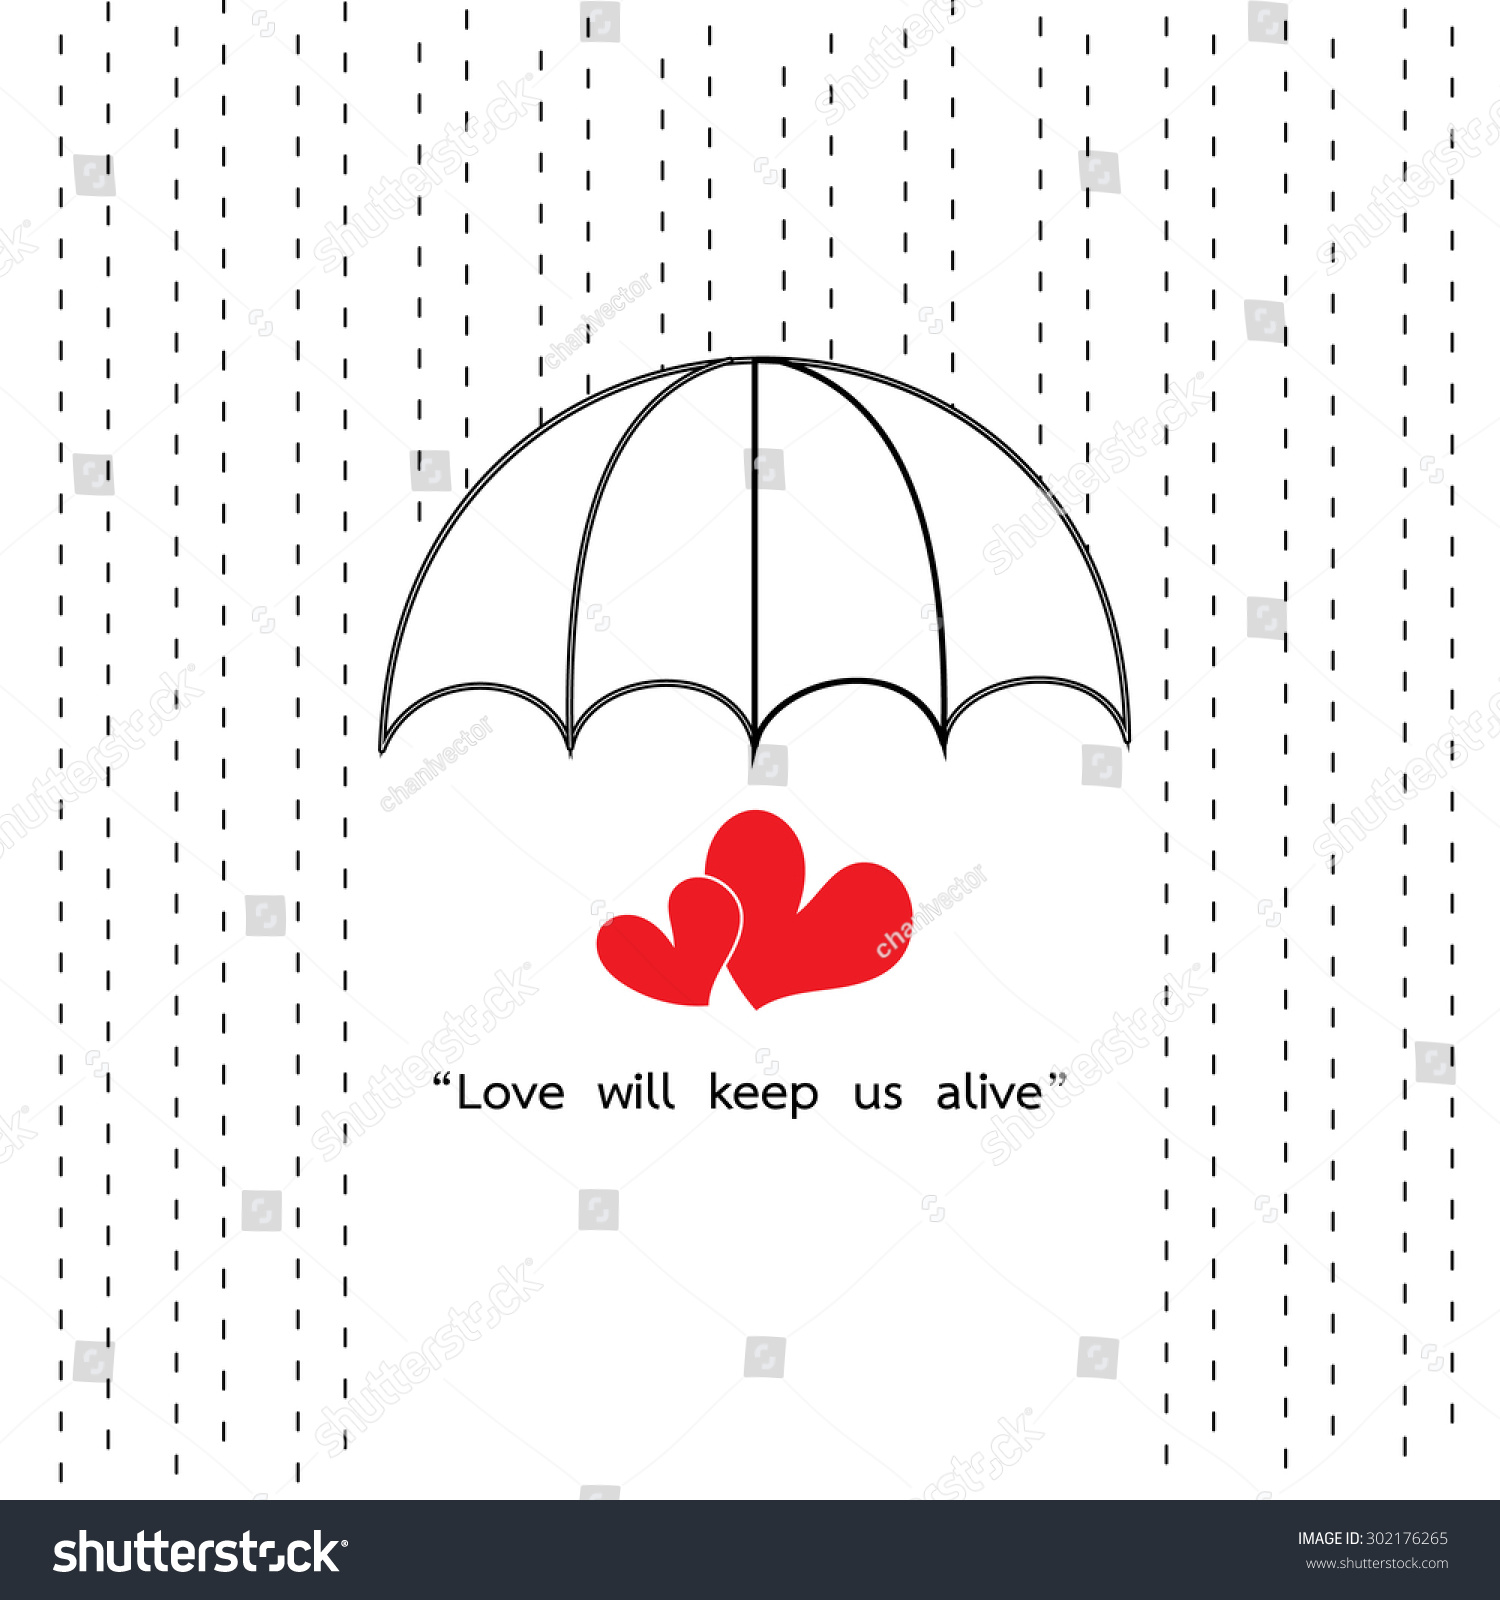 umbrella protect rainy with two heart and quotes love